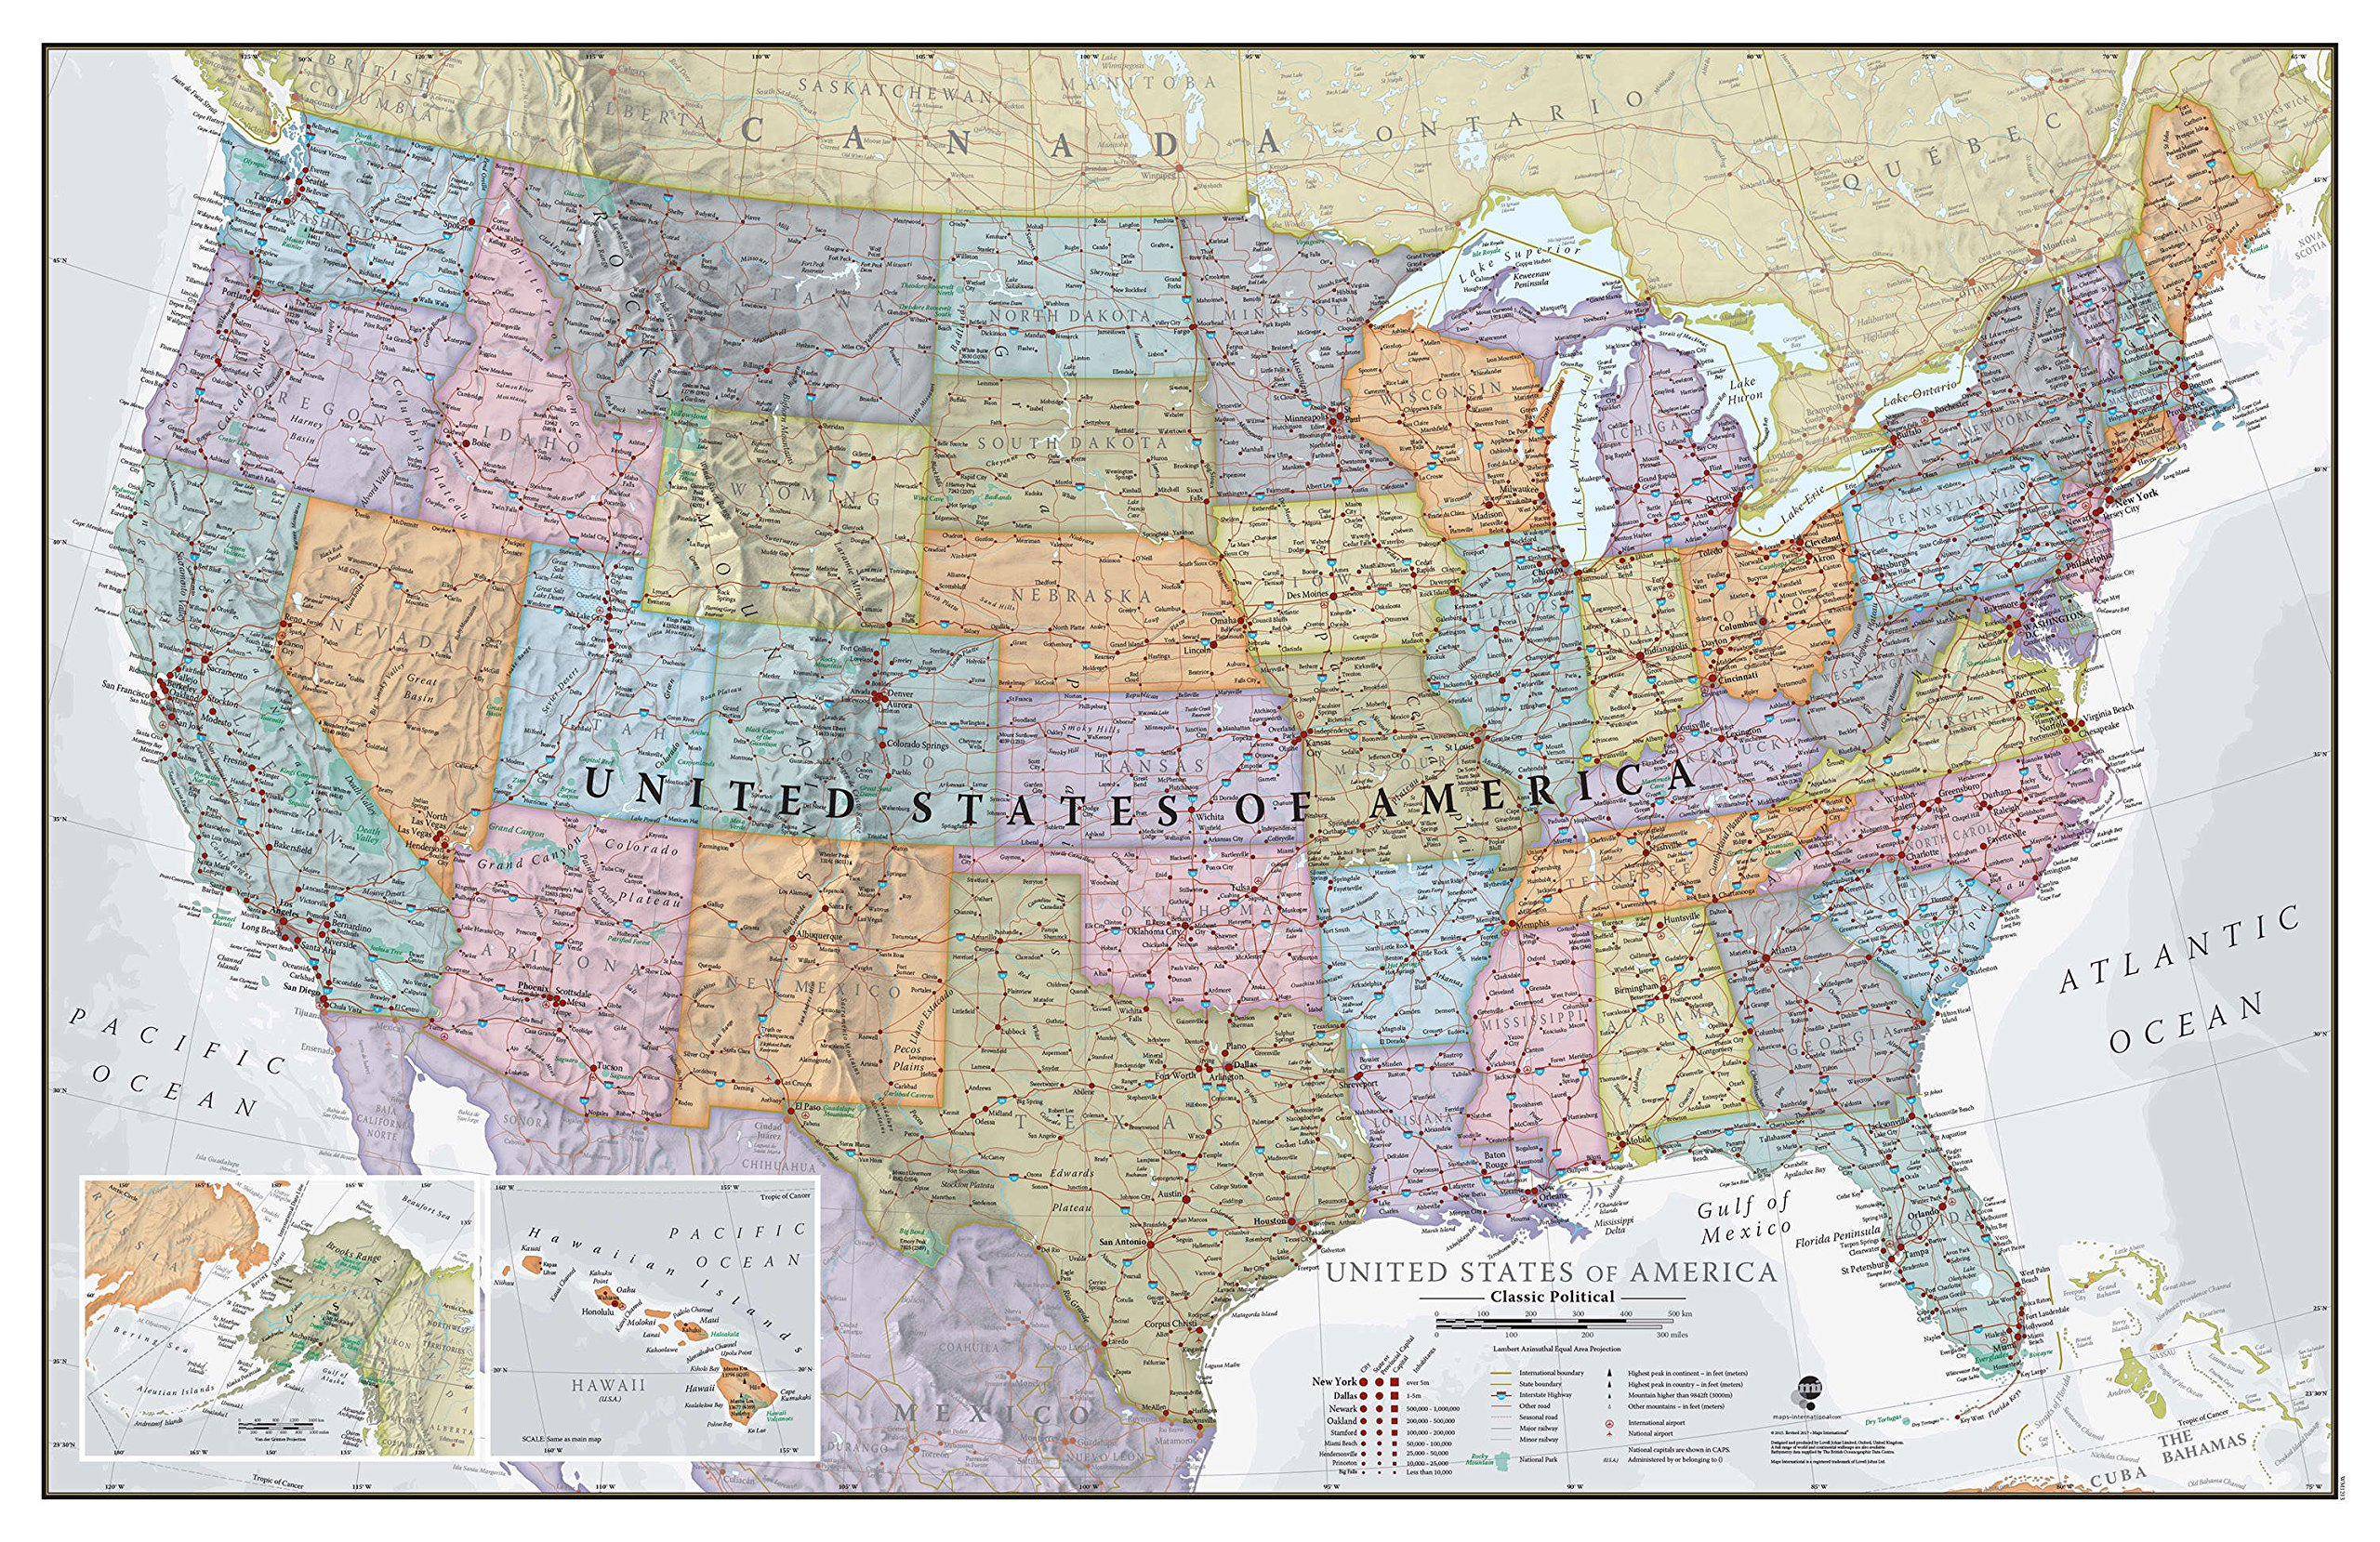 Maps International Classic USA Wall Map - Map of The USA Poster - Front Lamination – 34 x 22